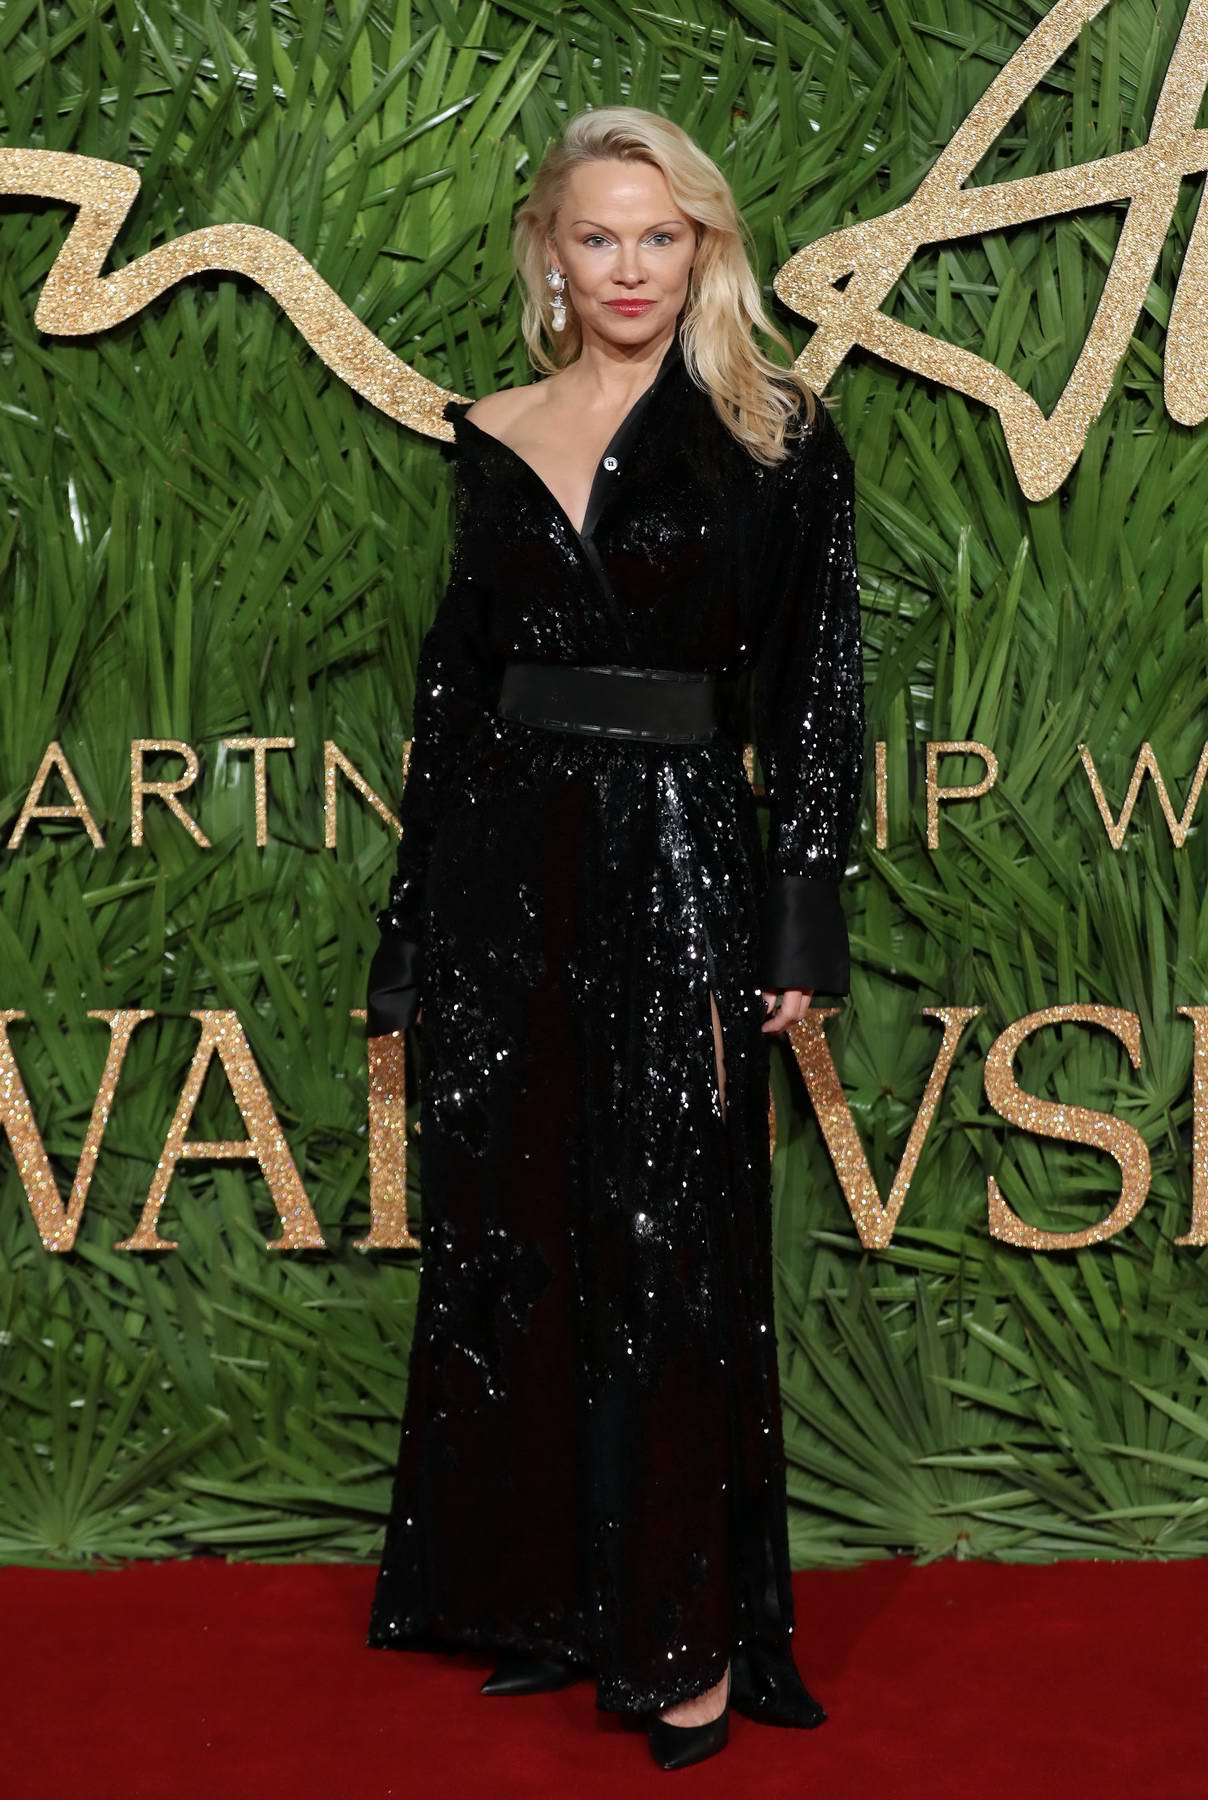 Pamela Anderson at The British Fashion Awards 2017 in partnership with Swarovski held at the Royal Albert Hall in London